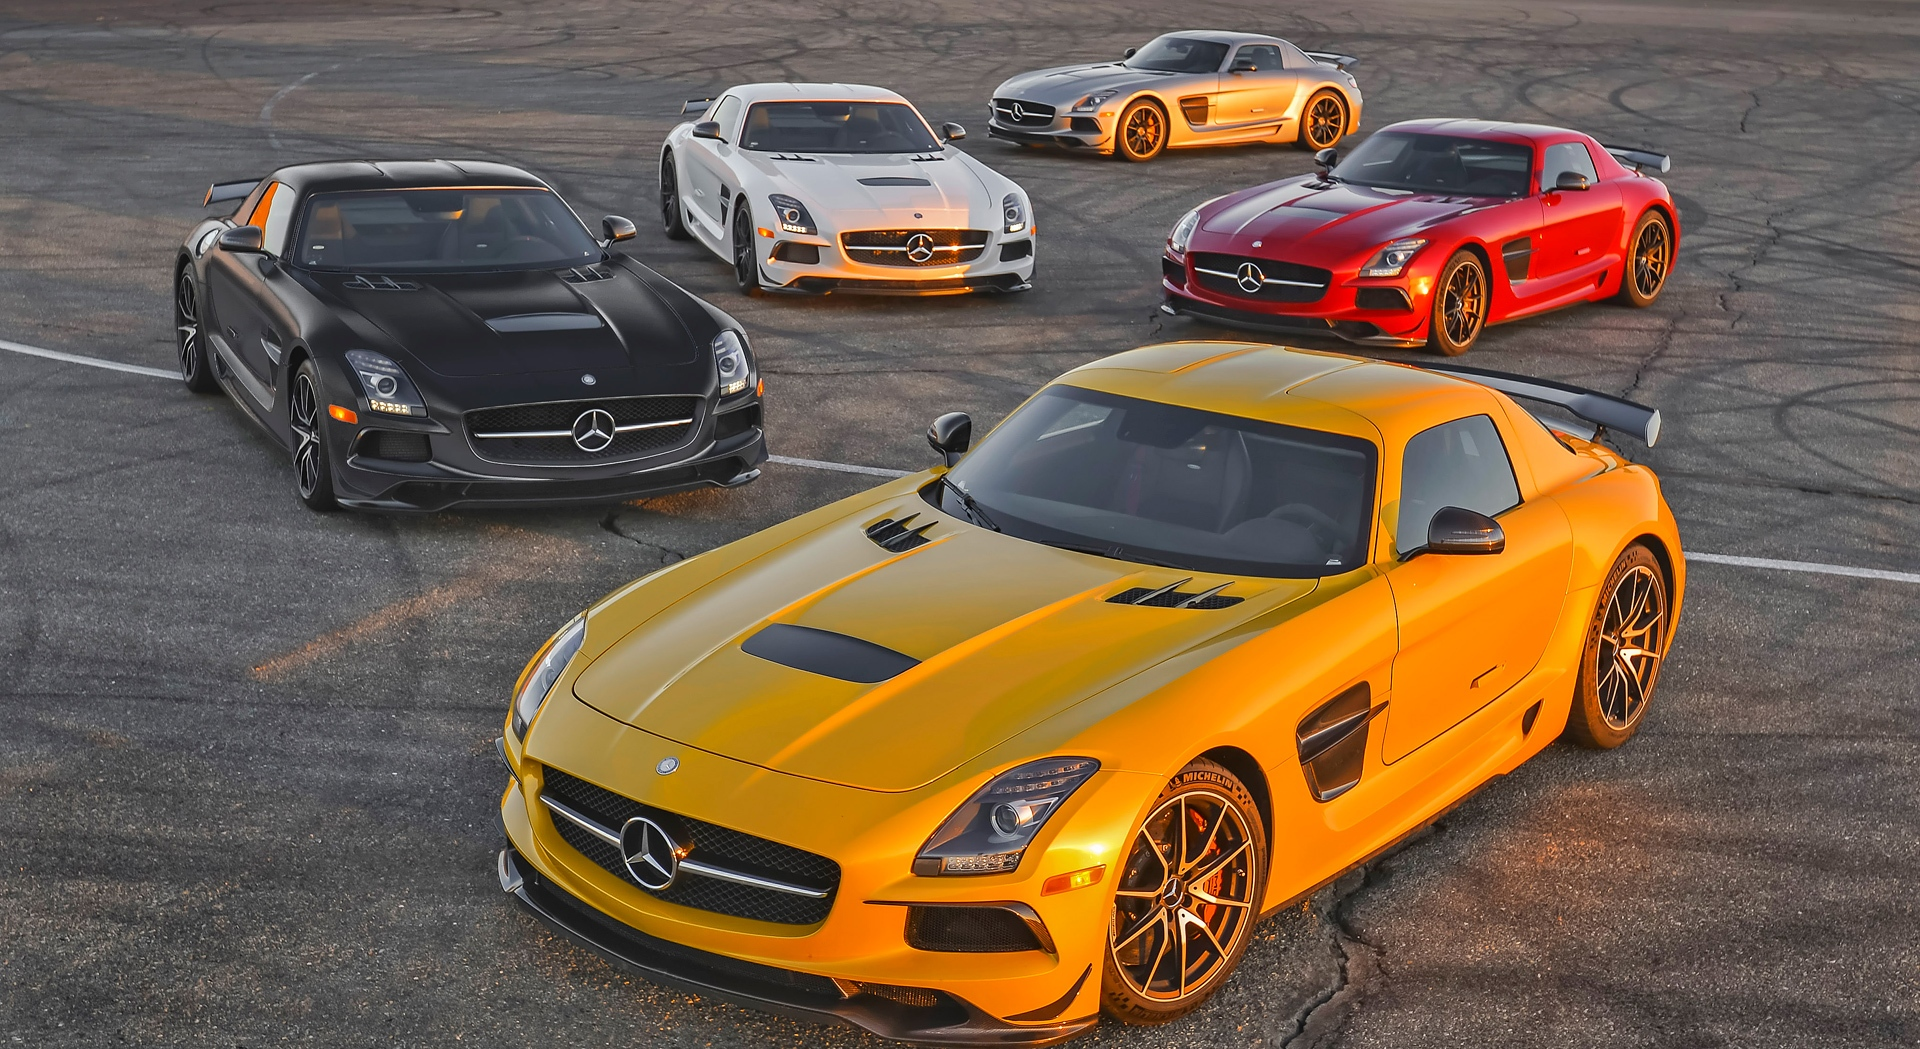 mercedes benz sls amg video download with Mercedes Benz Sls Amg Car Collection on Most Viewed furthermore Mercedes Background 23531 in addition 593 2013 Mercedes Benz Sls Amg Gt 11 furthermore 1030519 besides Burj Al Arab Wallpapers.